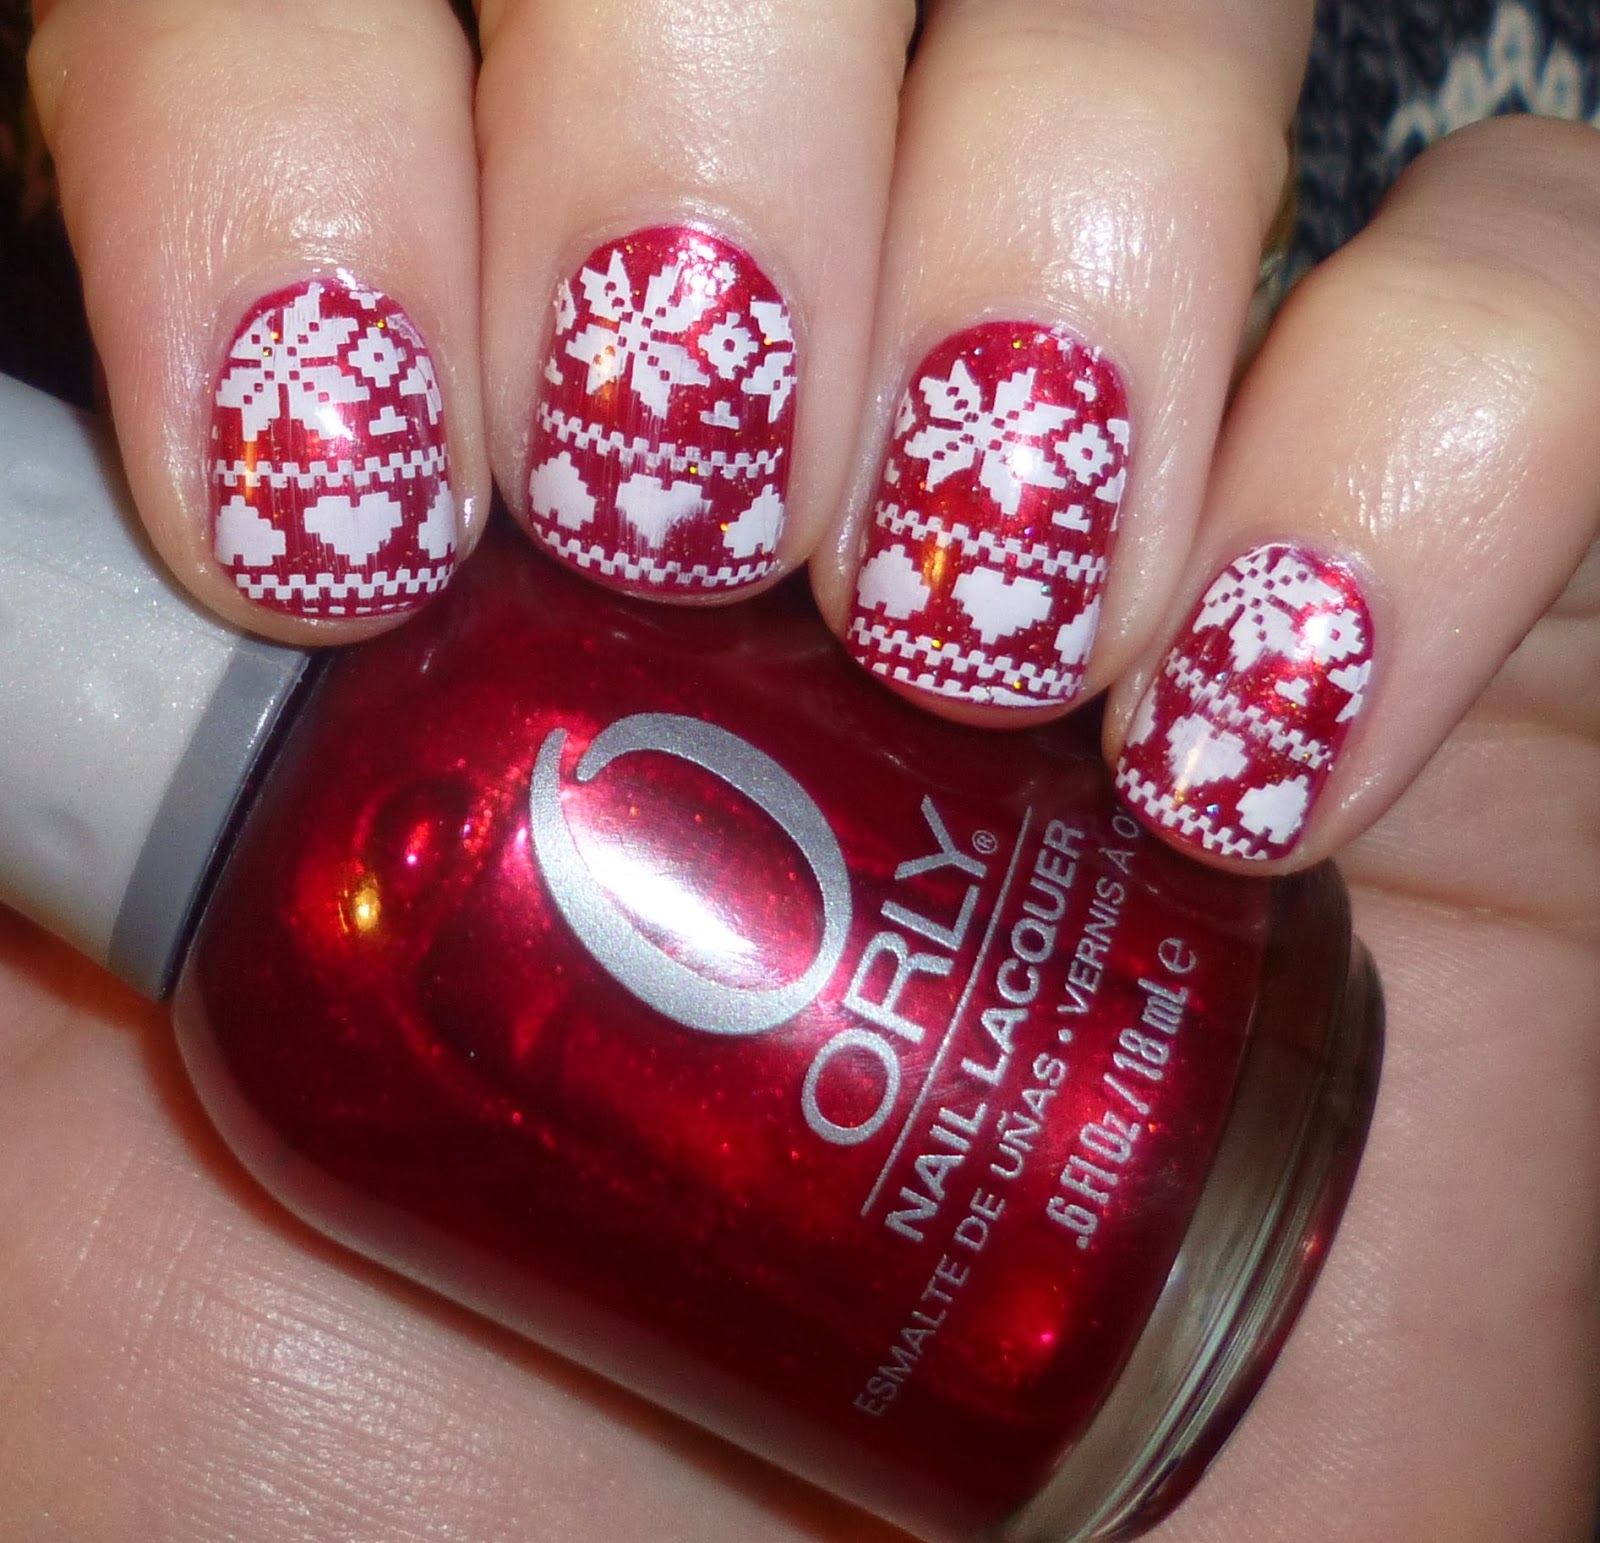 For These Pretty Nails I Started With A Simple Two Coats Of Orly Torrid Is Bold Red Foil Finish And Just The Perfect Base All